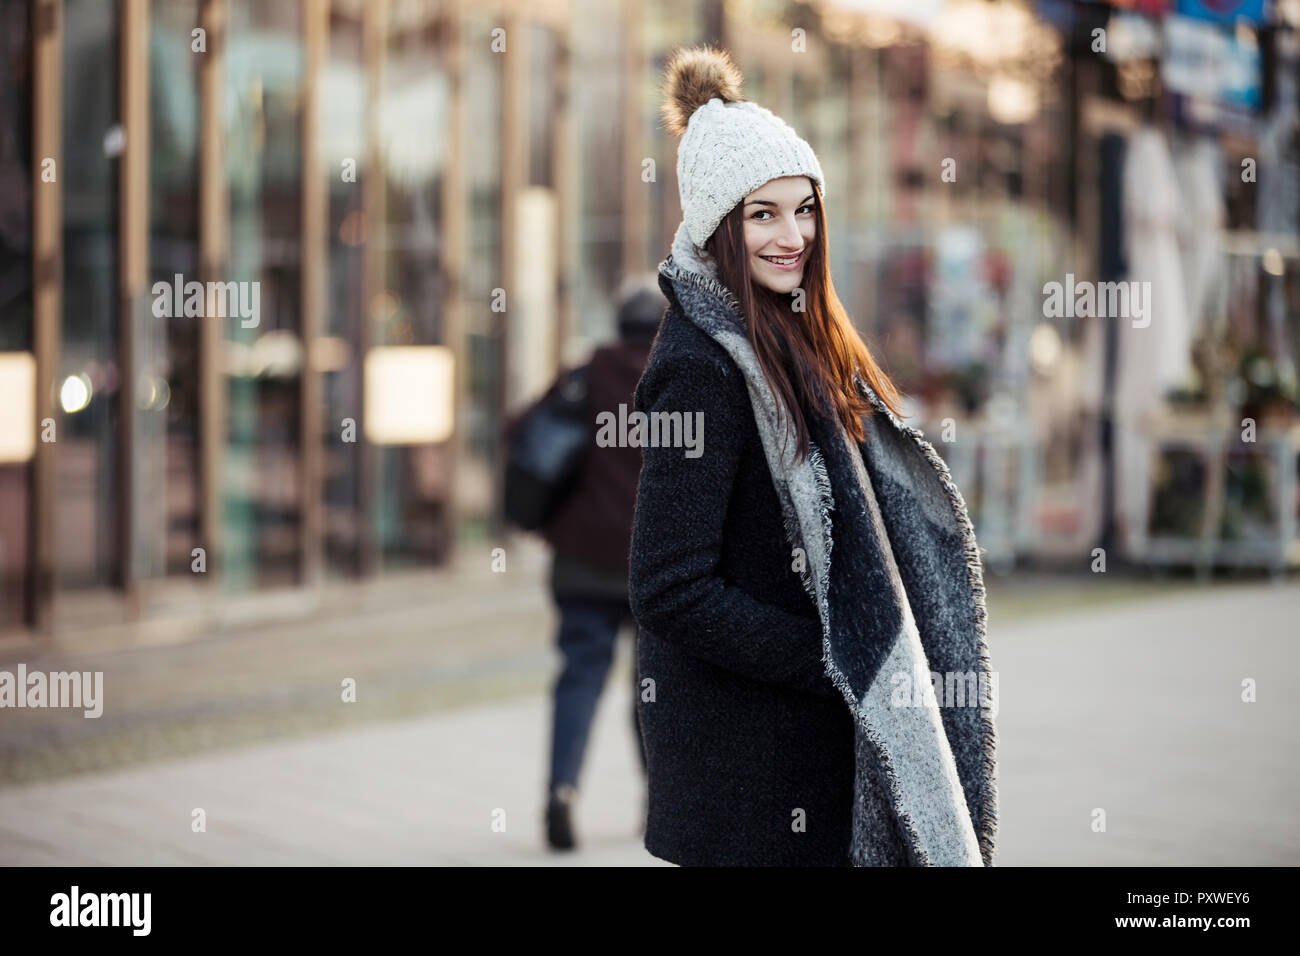 Portrait of fashionable young woman in the city - Stock Image